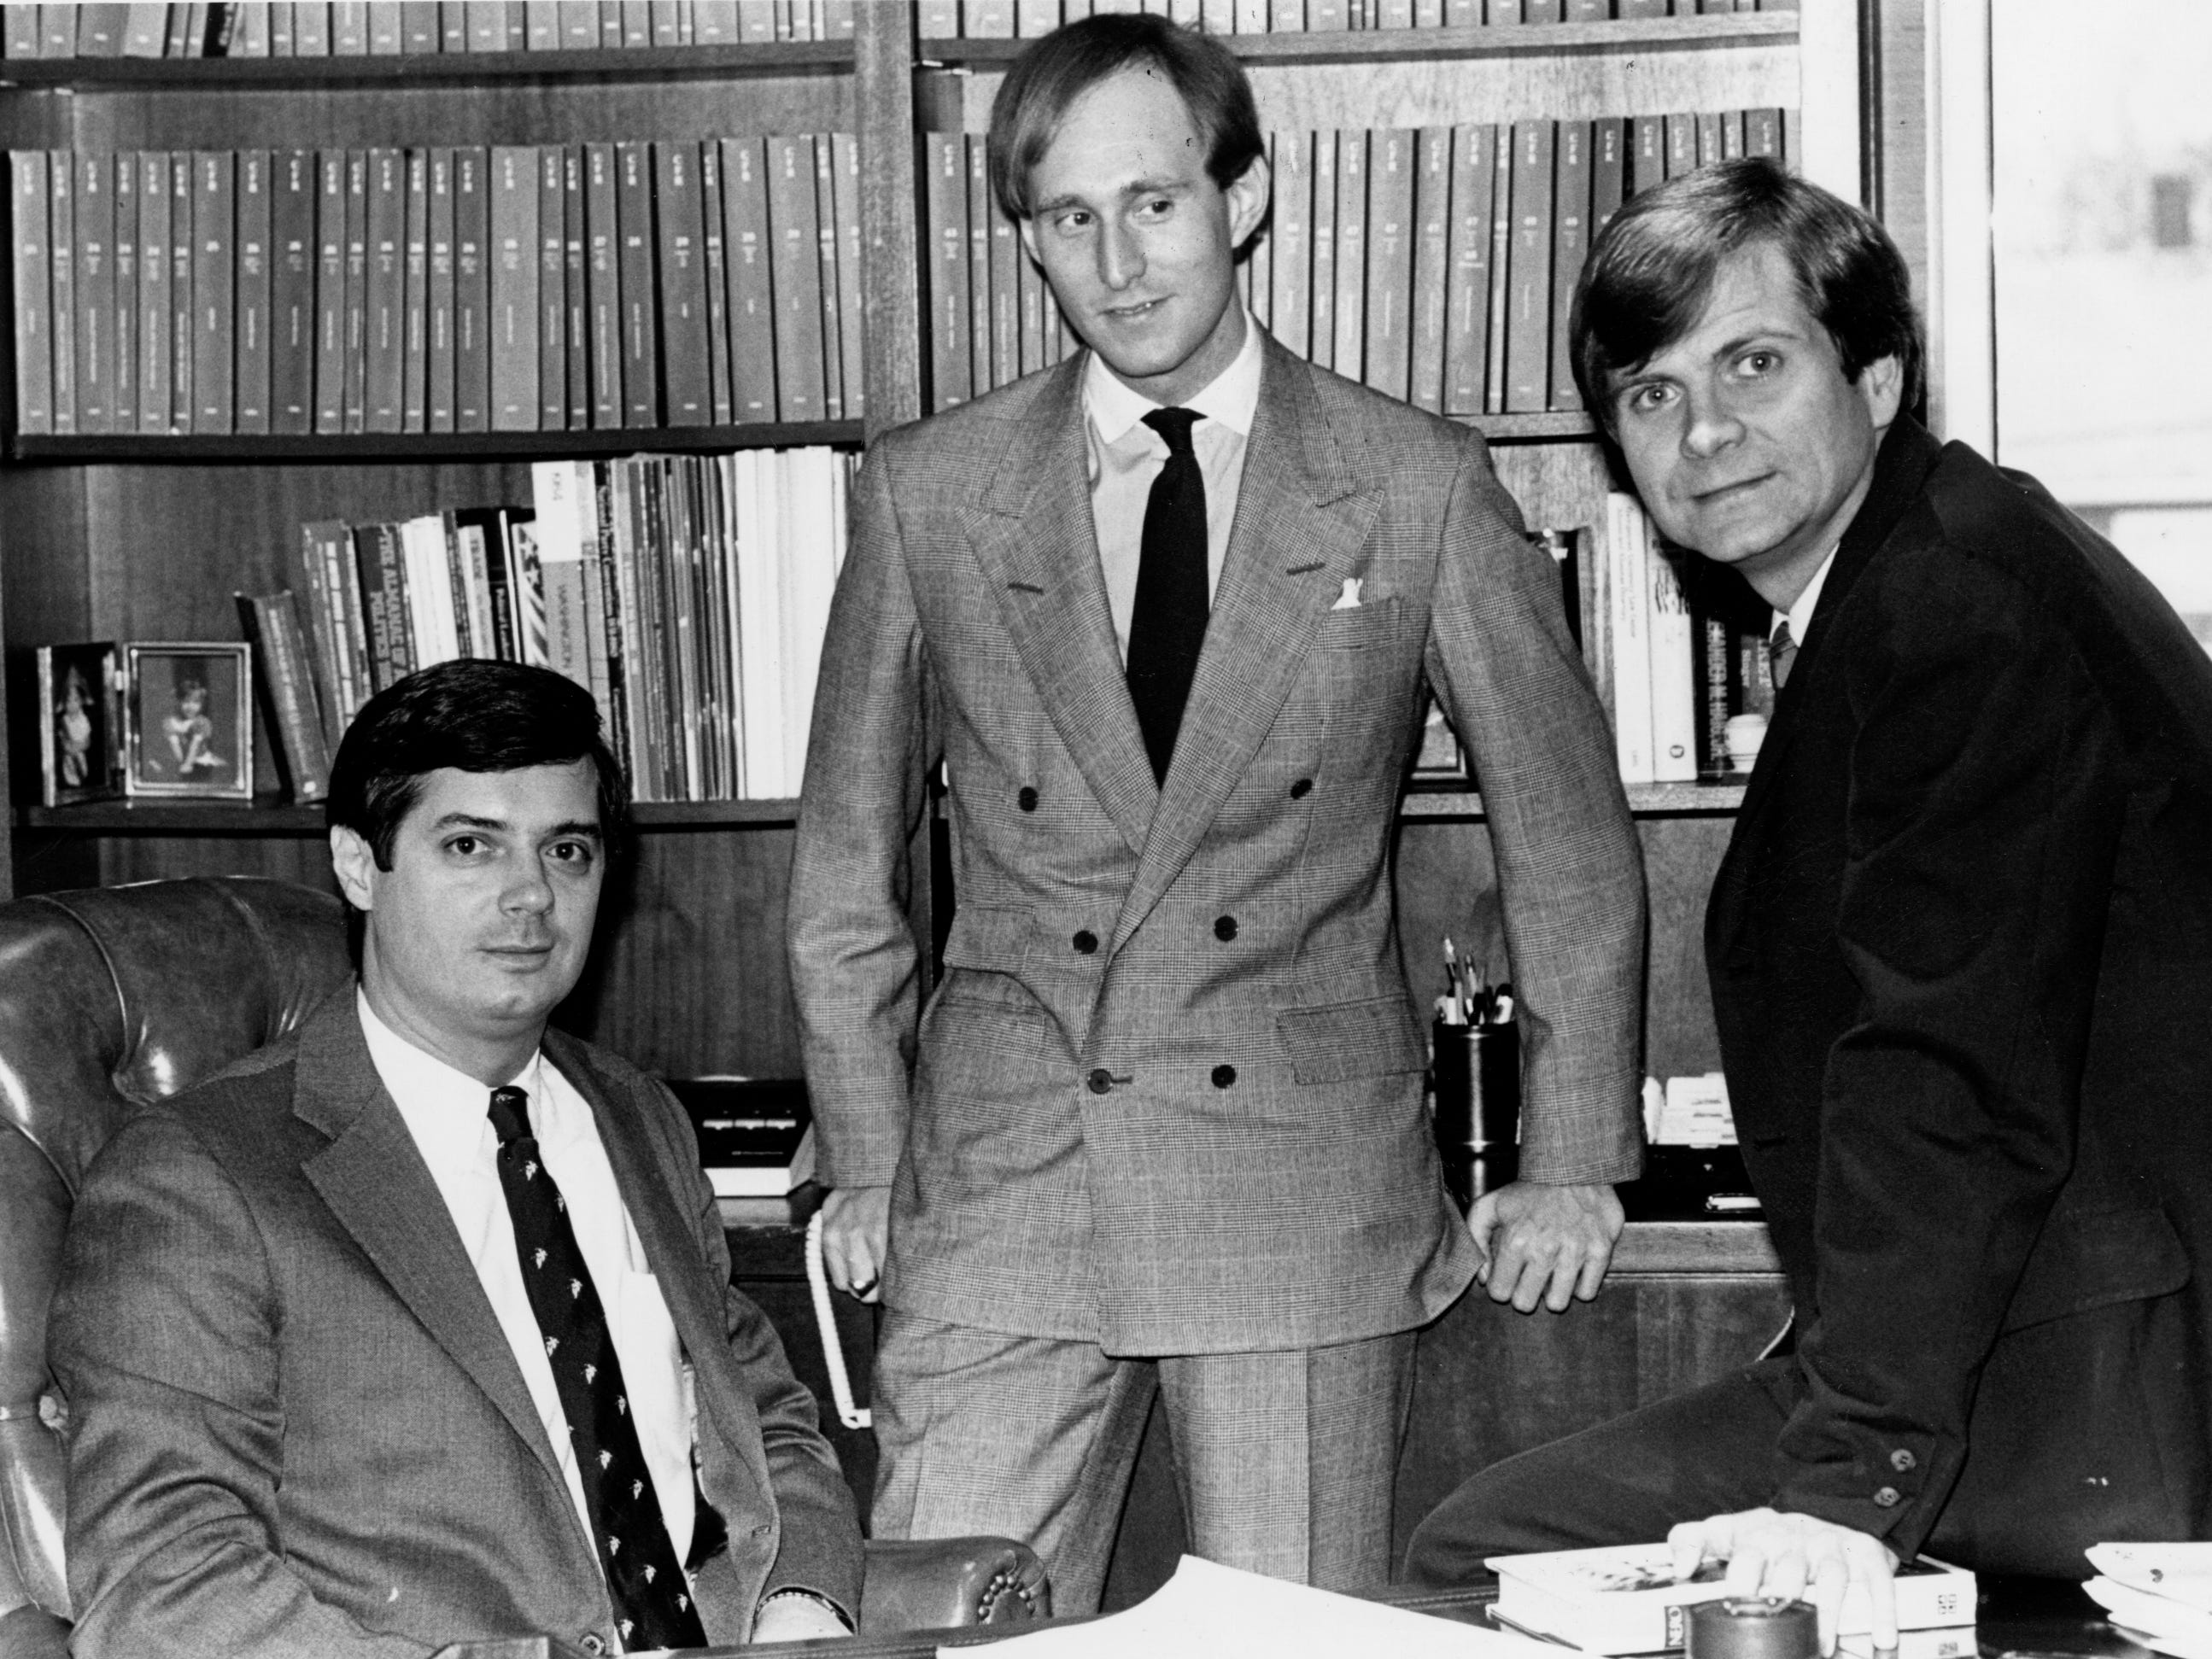 Republican political operatives Paul Manafort, Roger Stone and Lee Atwater pose for a portrait on March 21, 1989.